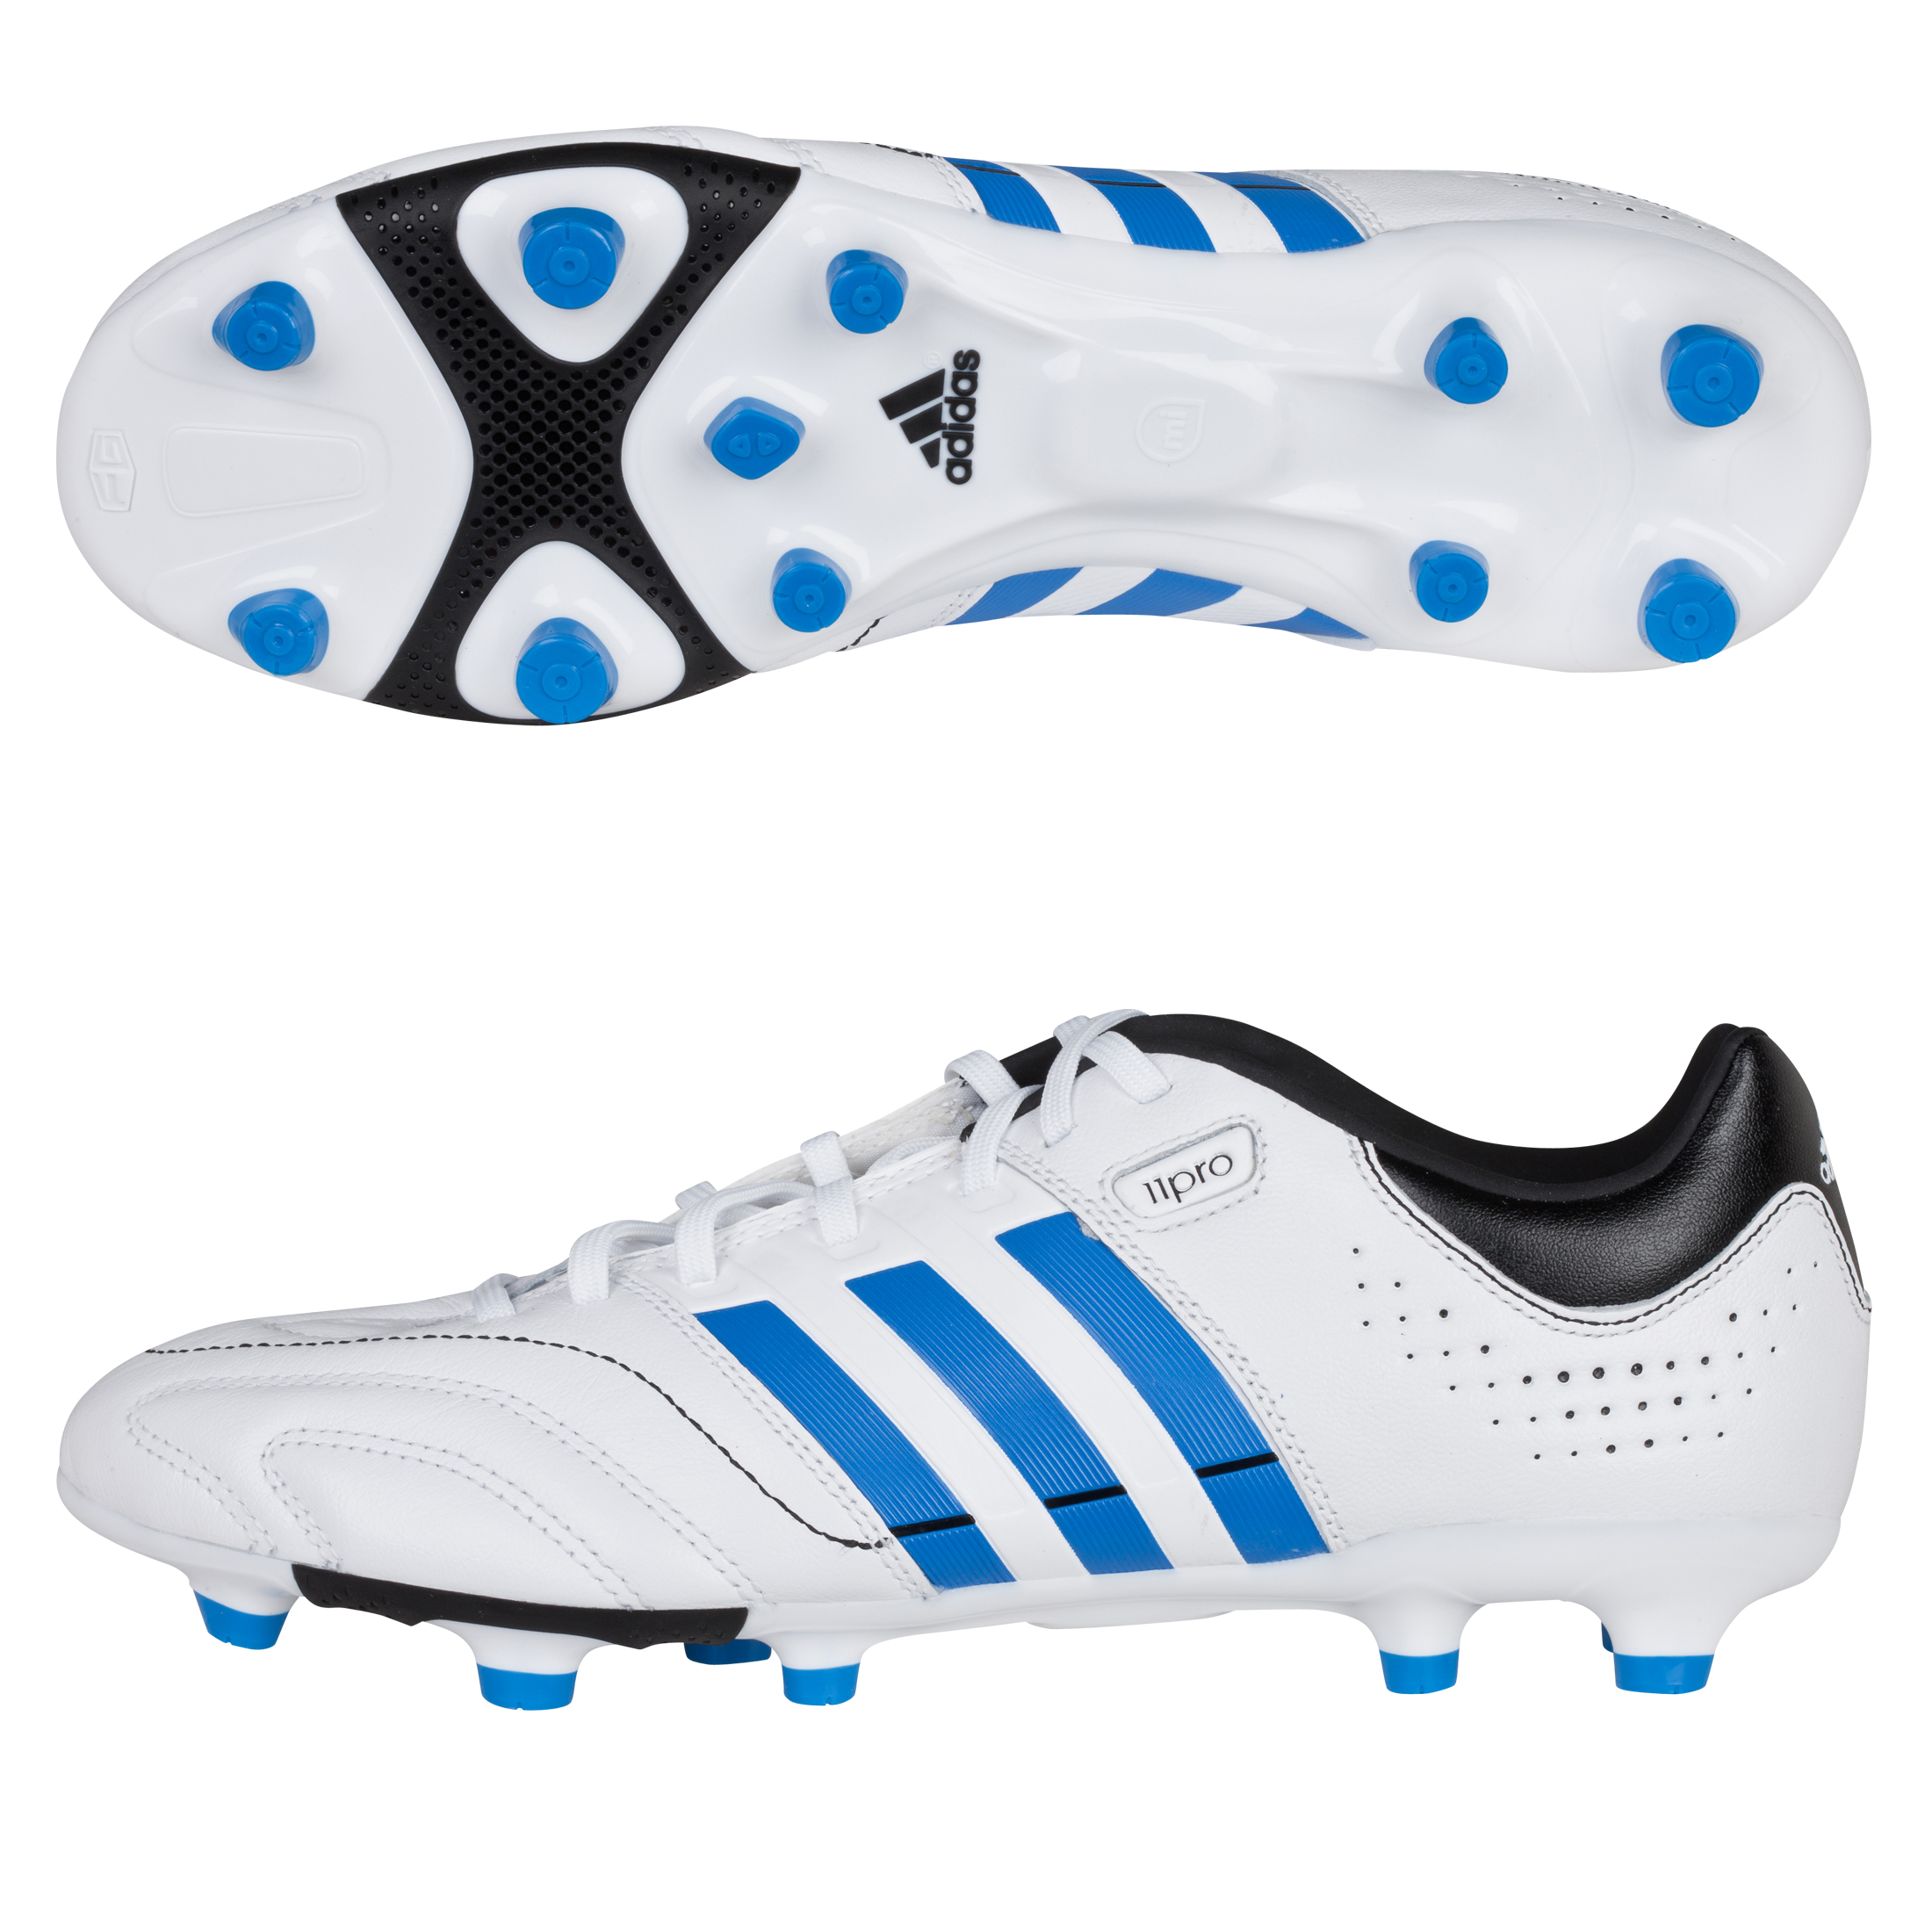 Adidas 11Core TRX Firm Ground Football Boots - Running White/Bright Blue/Black